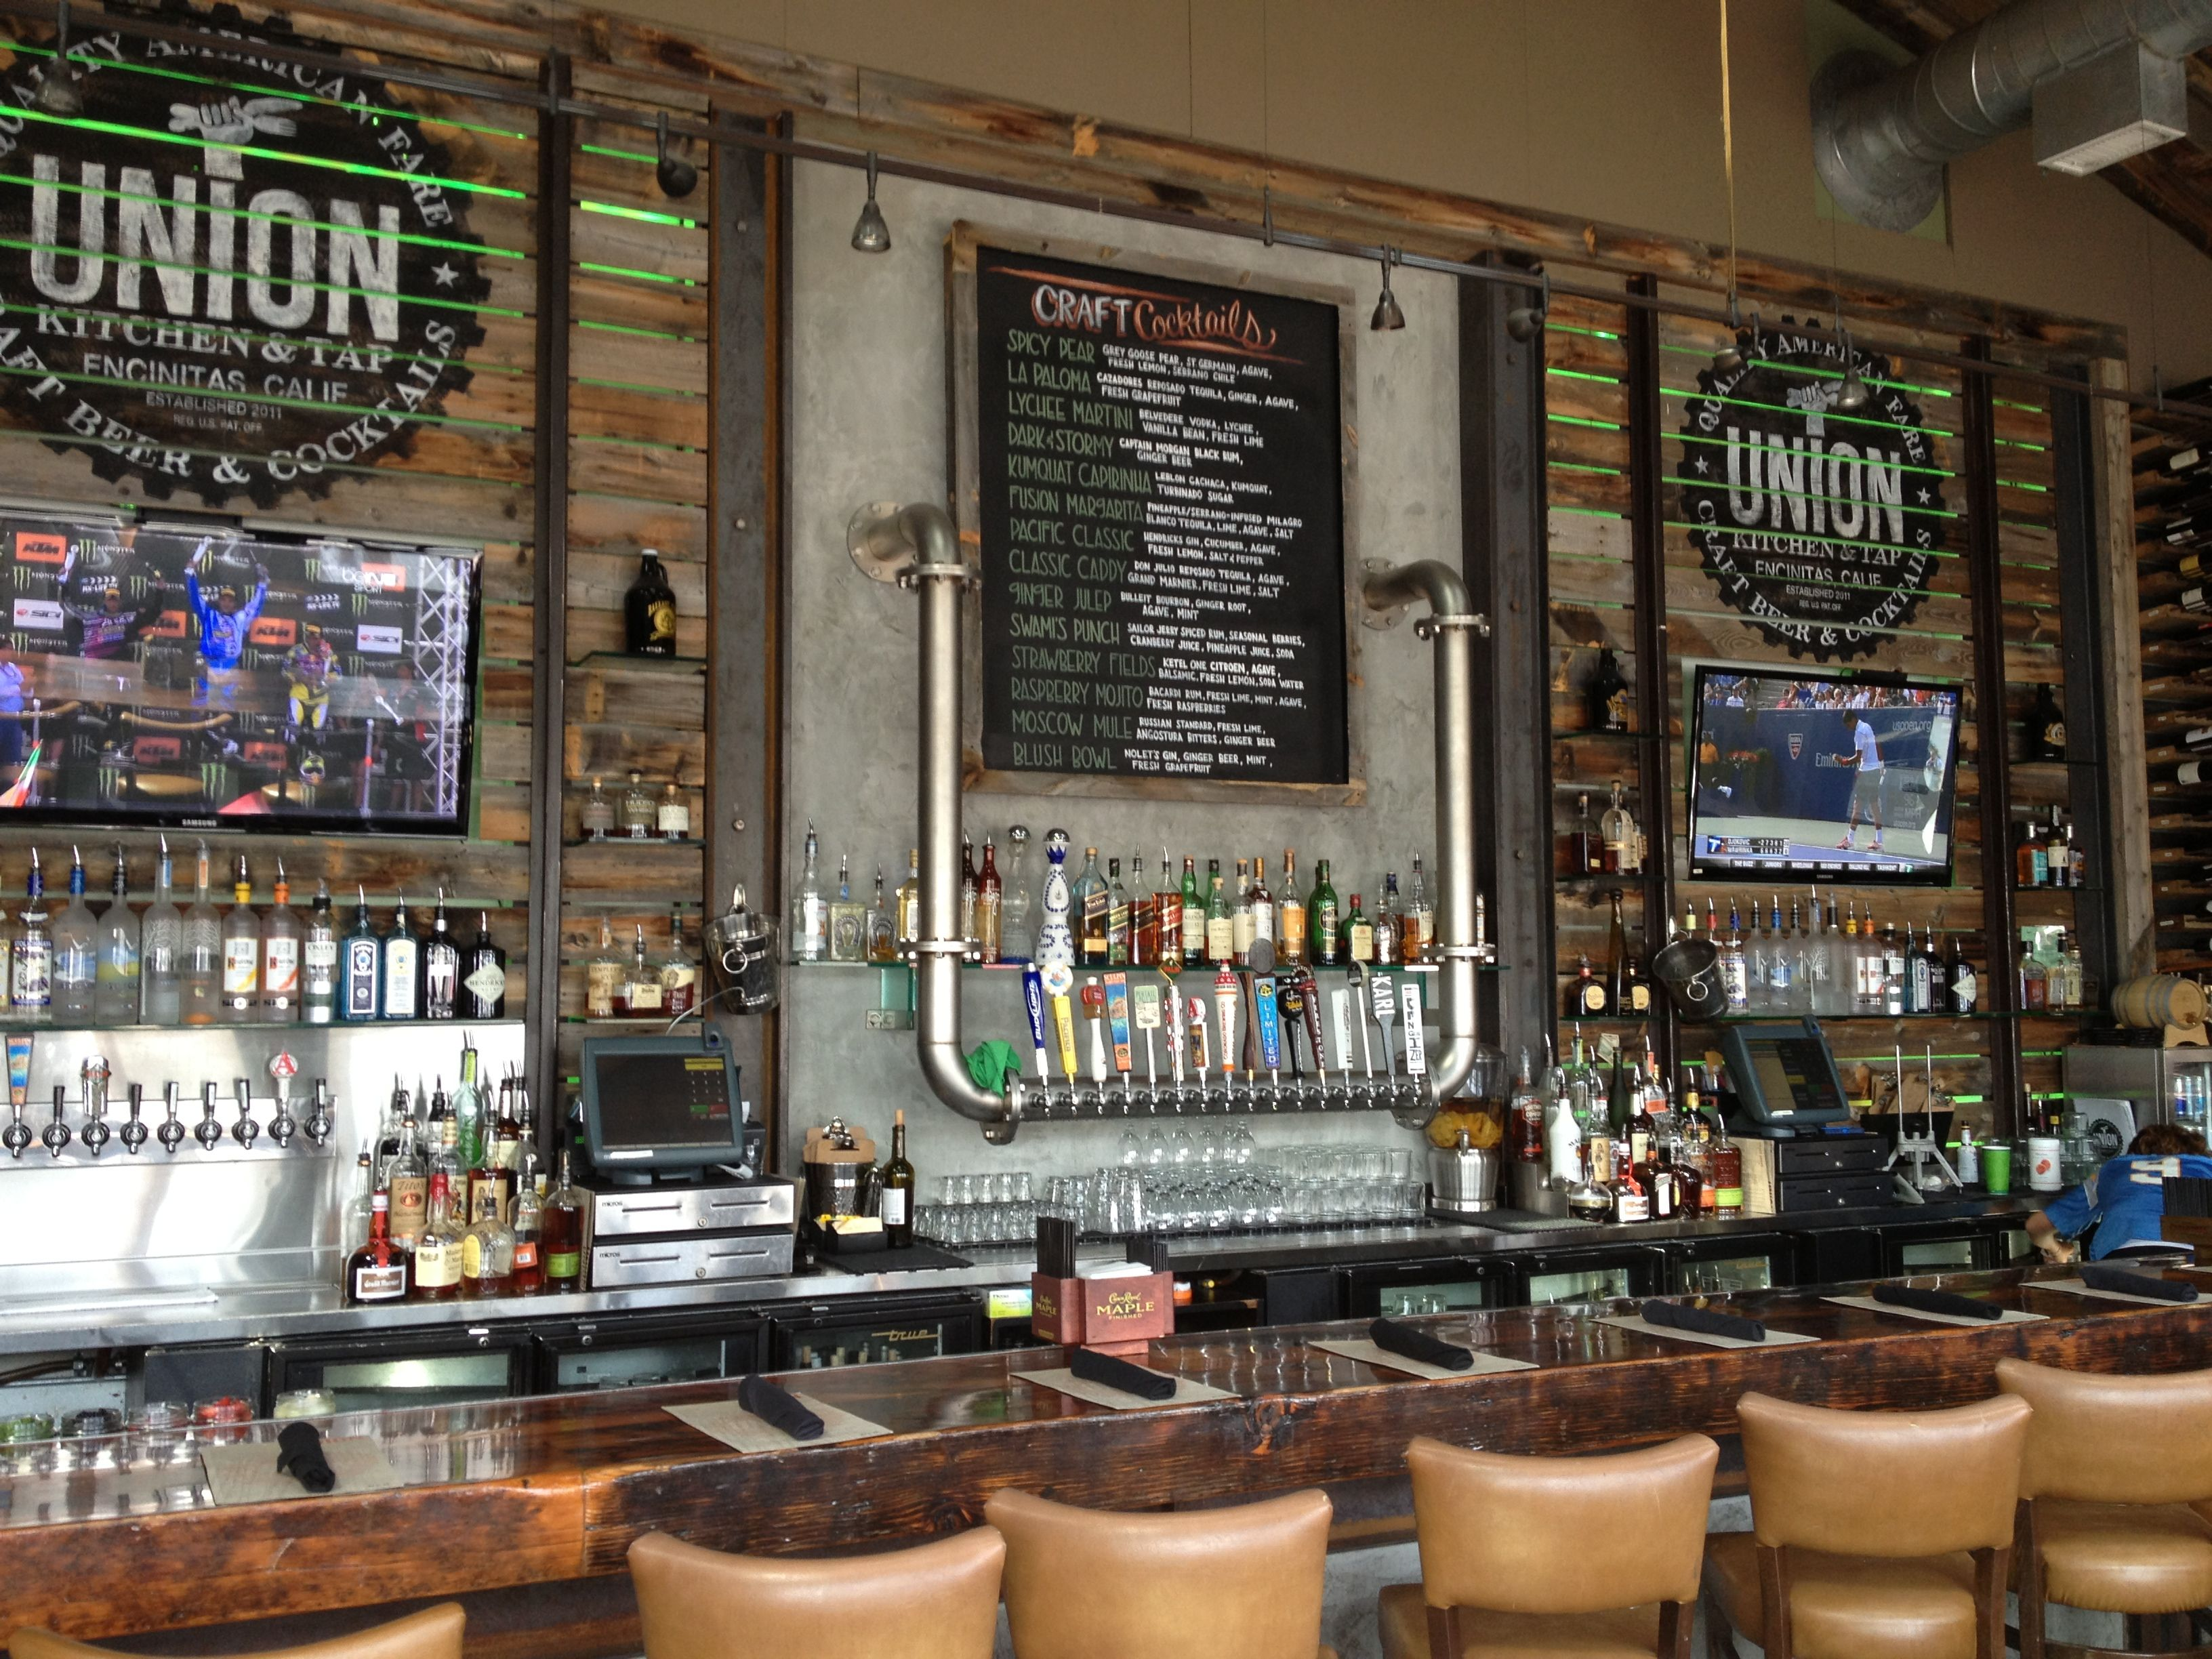 Wohnzimmer Cafe Bar Union Bar In Encinitas Great Bar Design Client